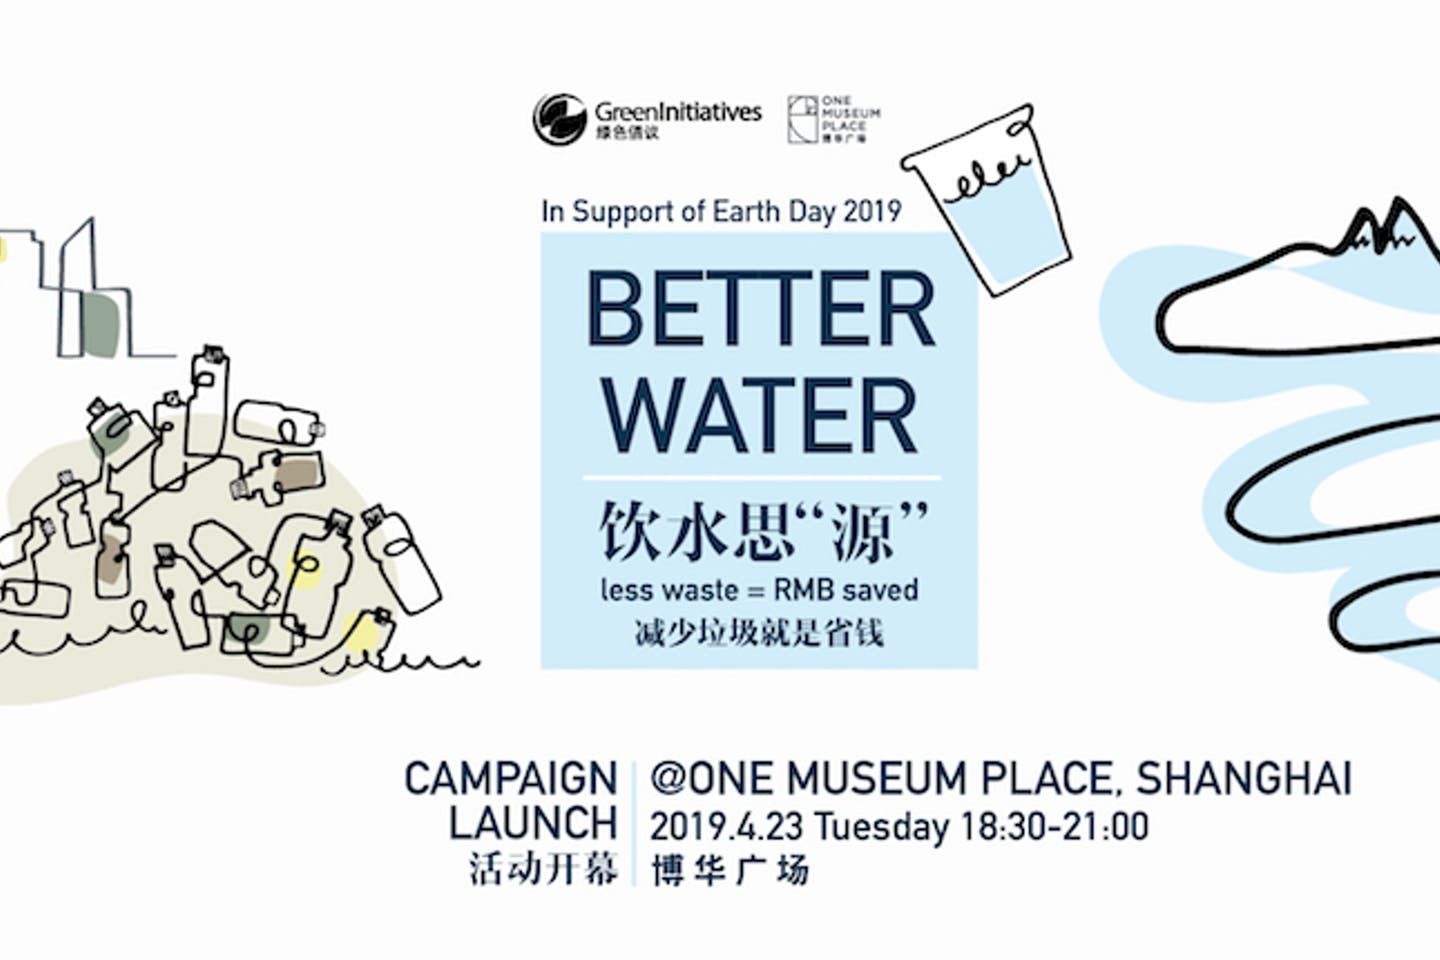 One Museum Place partners with Green Initiatives to launch 'Better Water' Campaign to reduce plastic waste